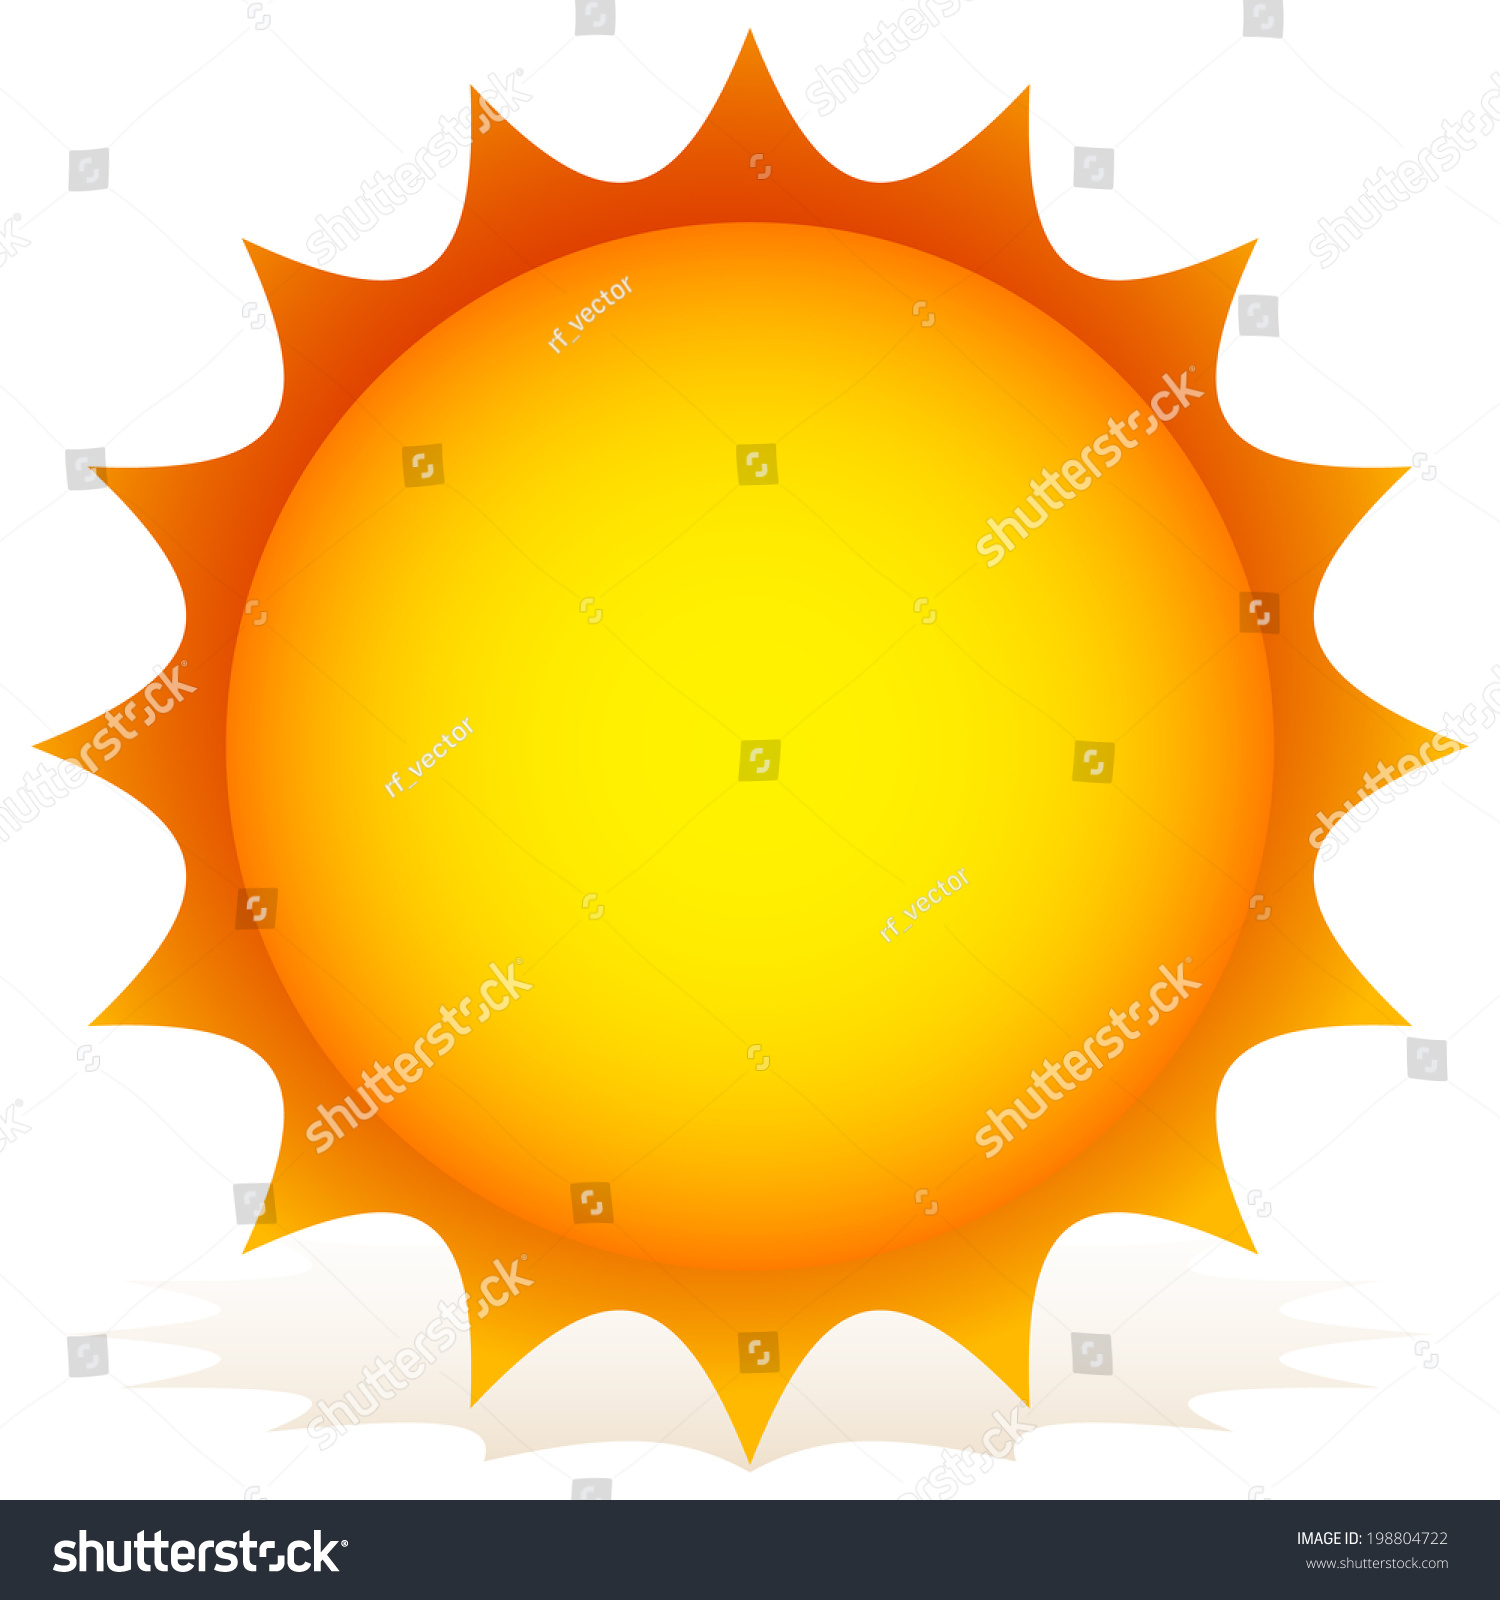 glossy sun clipart sun vector illustration stock vector 198804722 rh shutterstock com clipart of a sun clipart of a sunshine